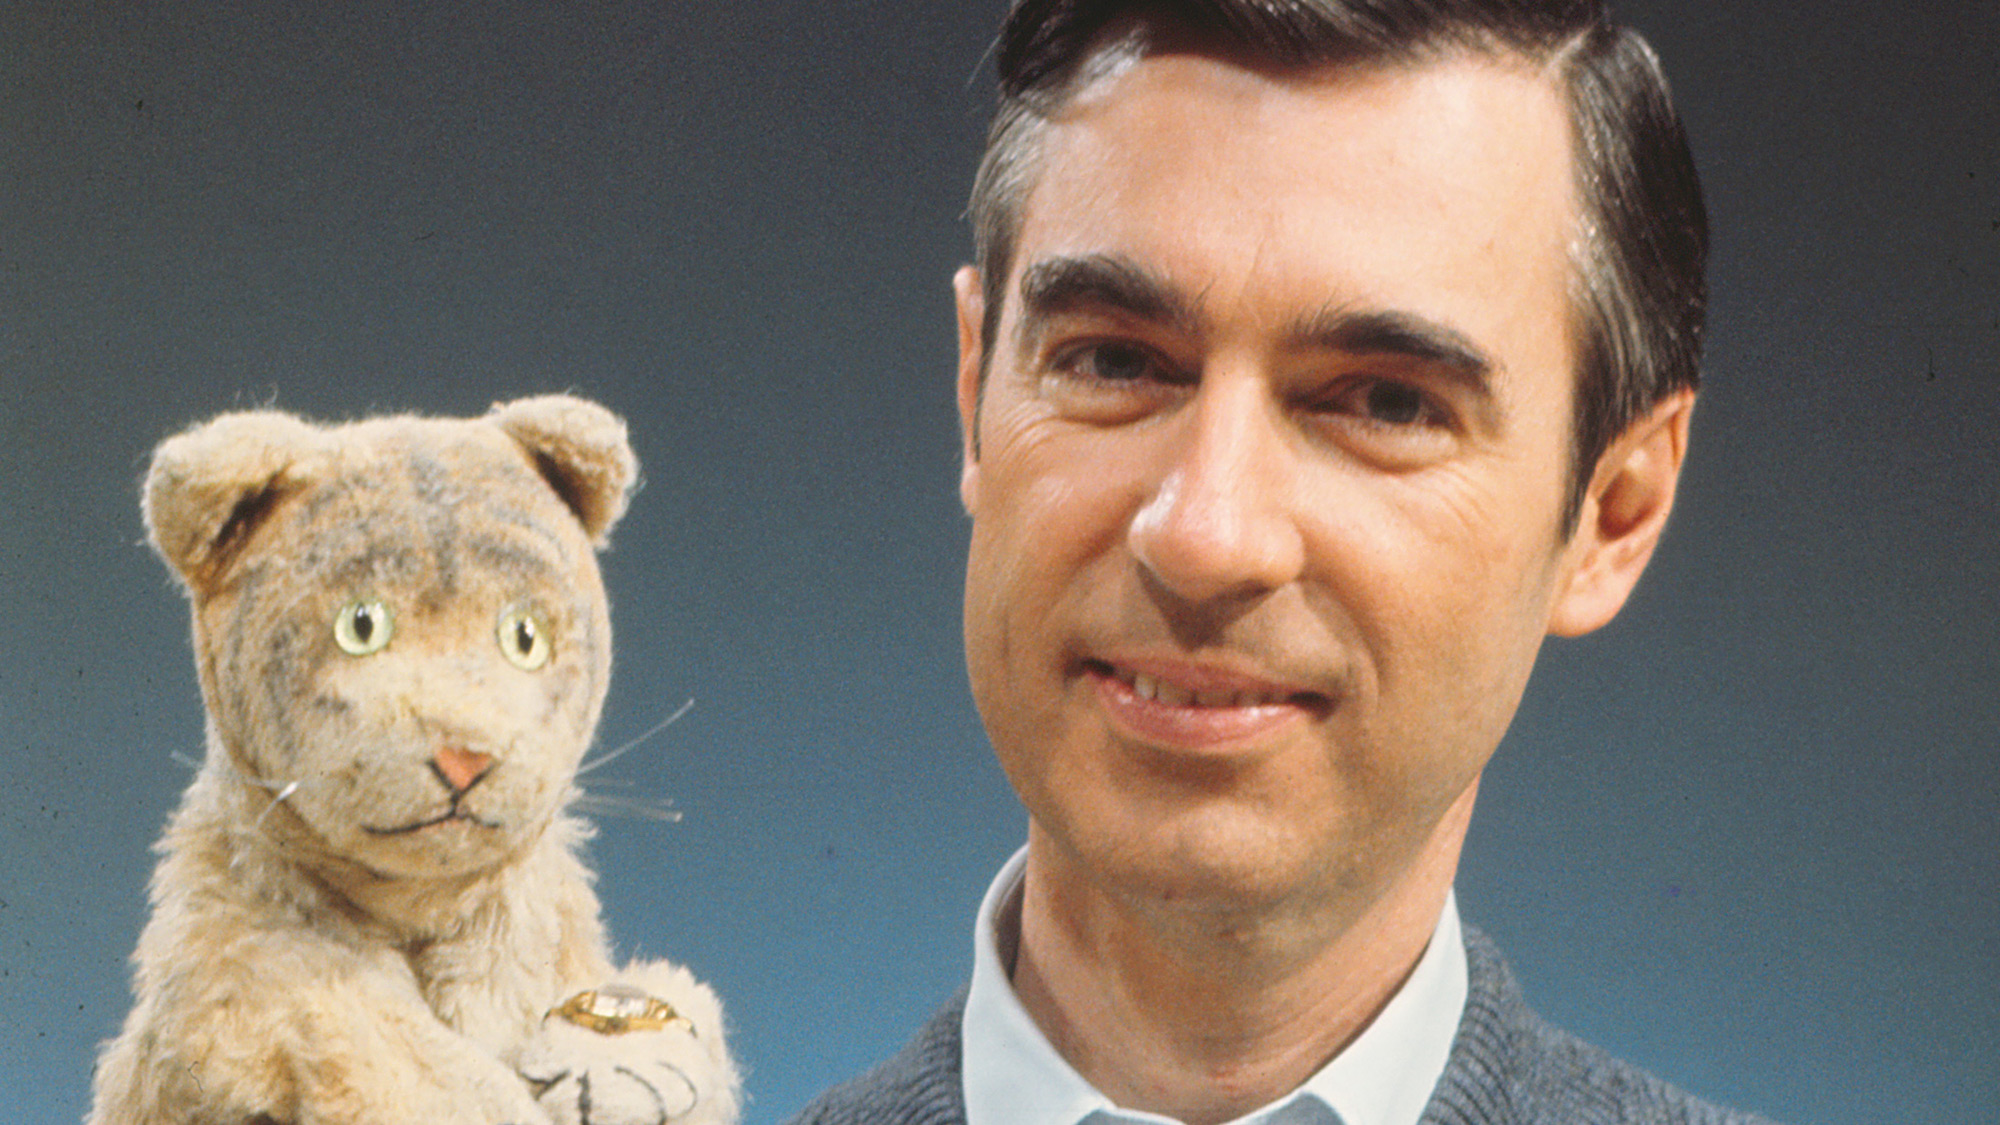 Fred Rogers (and Daniel Tiger) is the subject of Won't You Be My Neighbor, a new documentary.